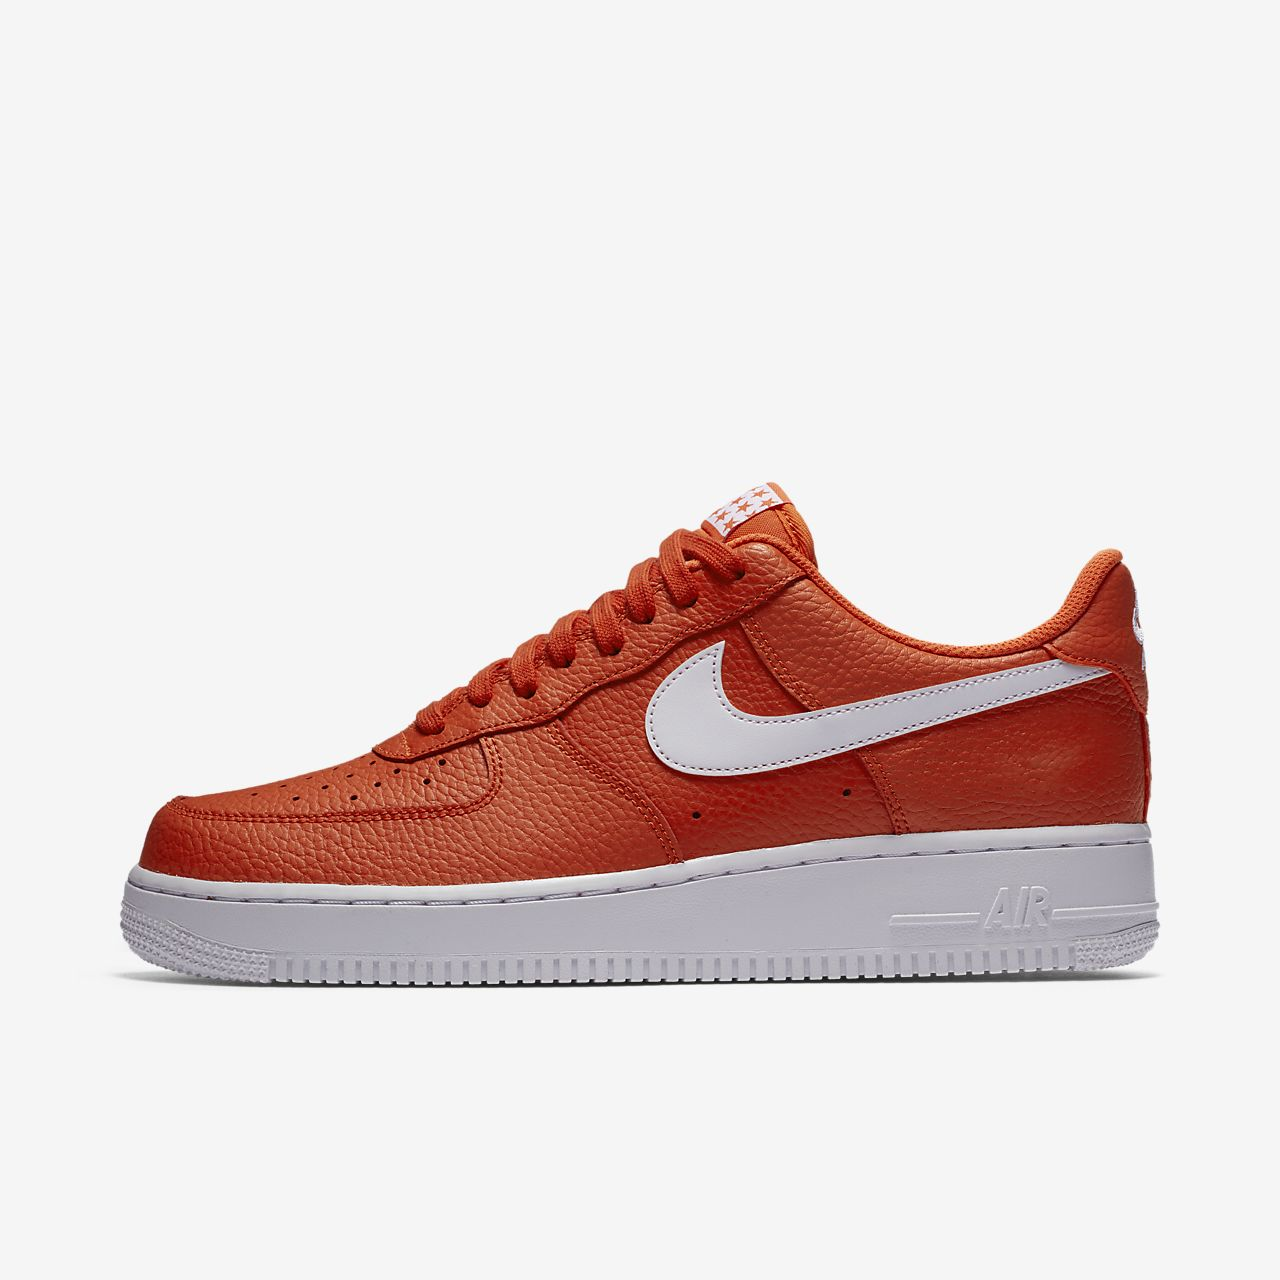 nike air force 1 all red nz